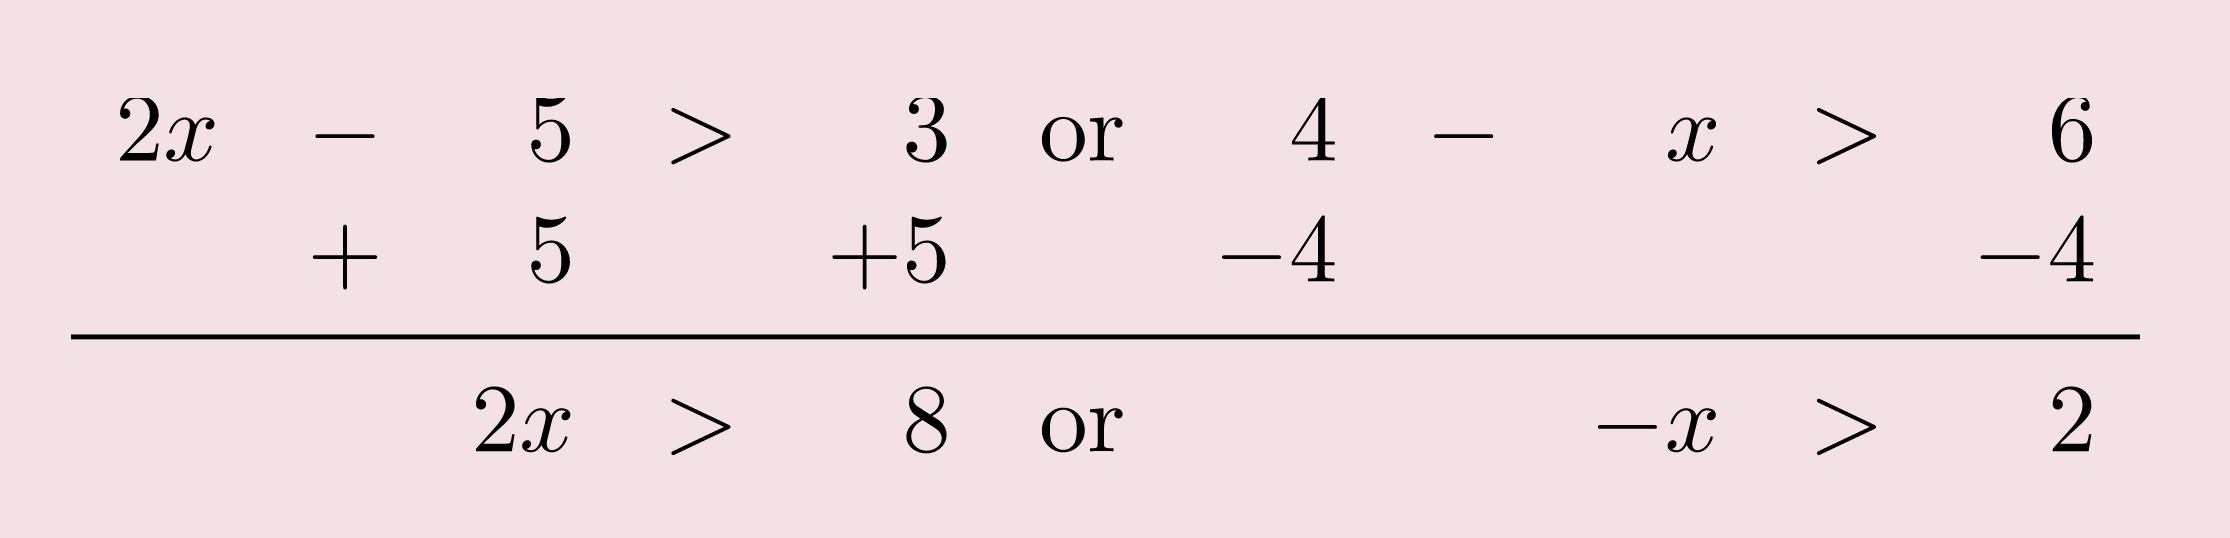 Add 5 to both sides or subtract 4 from both sides. Result is 2 X is greater than 8 or negative X is greater than 2.